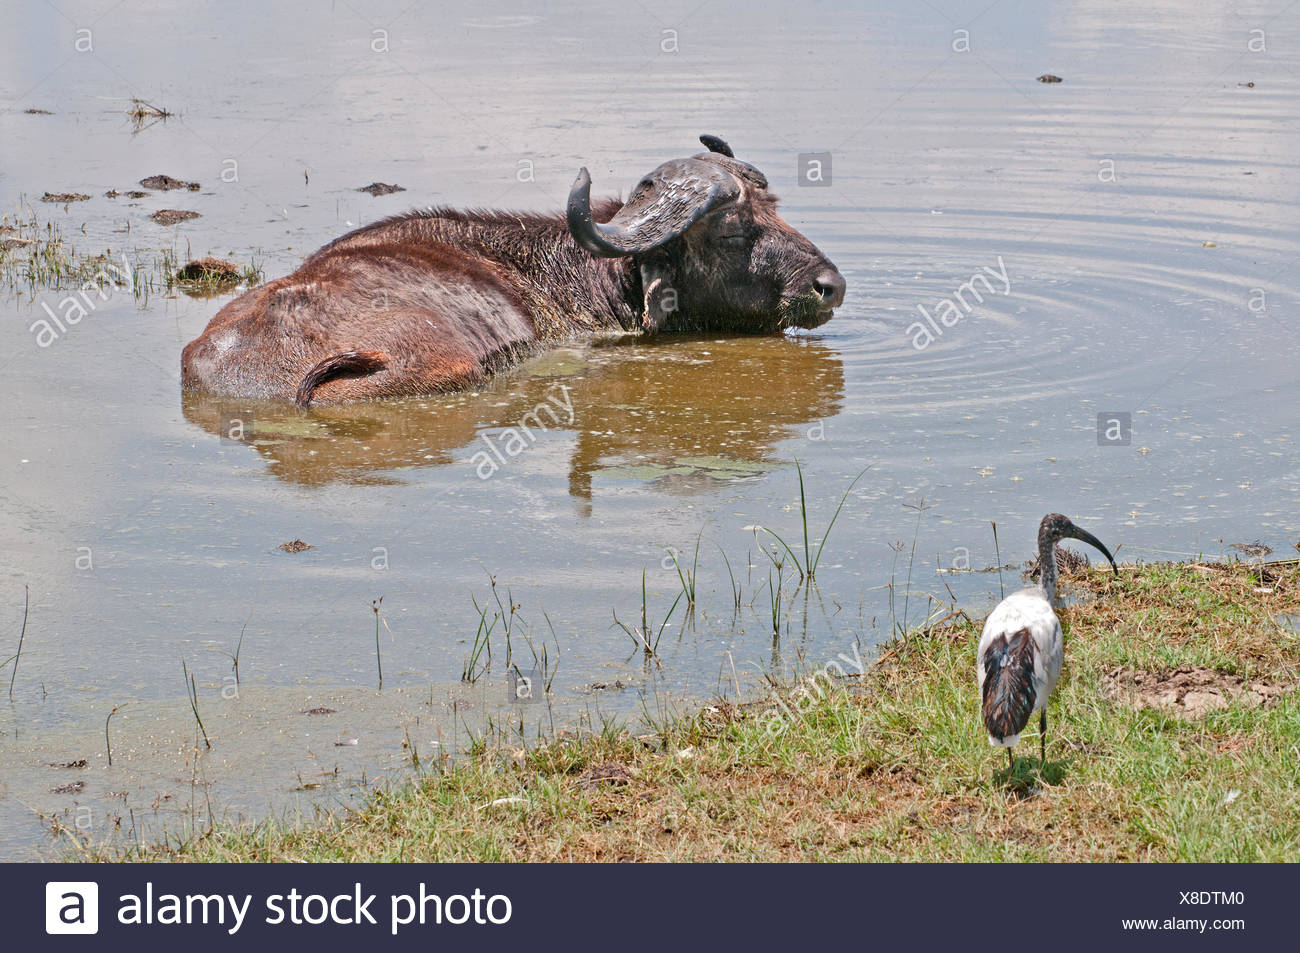 African Bufallo SYNCHERUS CAFFER wallowing in shallow water at edge of Lake Nakuru in National Park Kenya East Africa  AFRICAN B - Stock Image